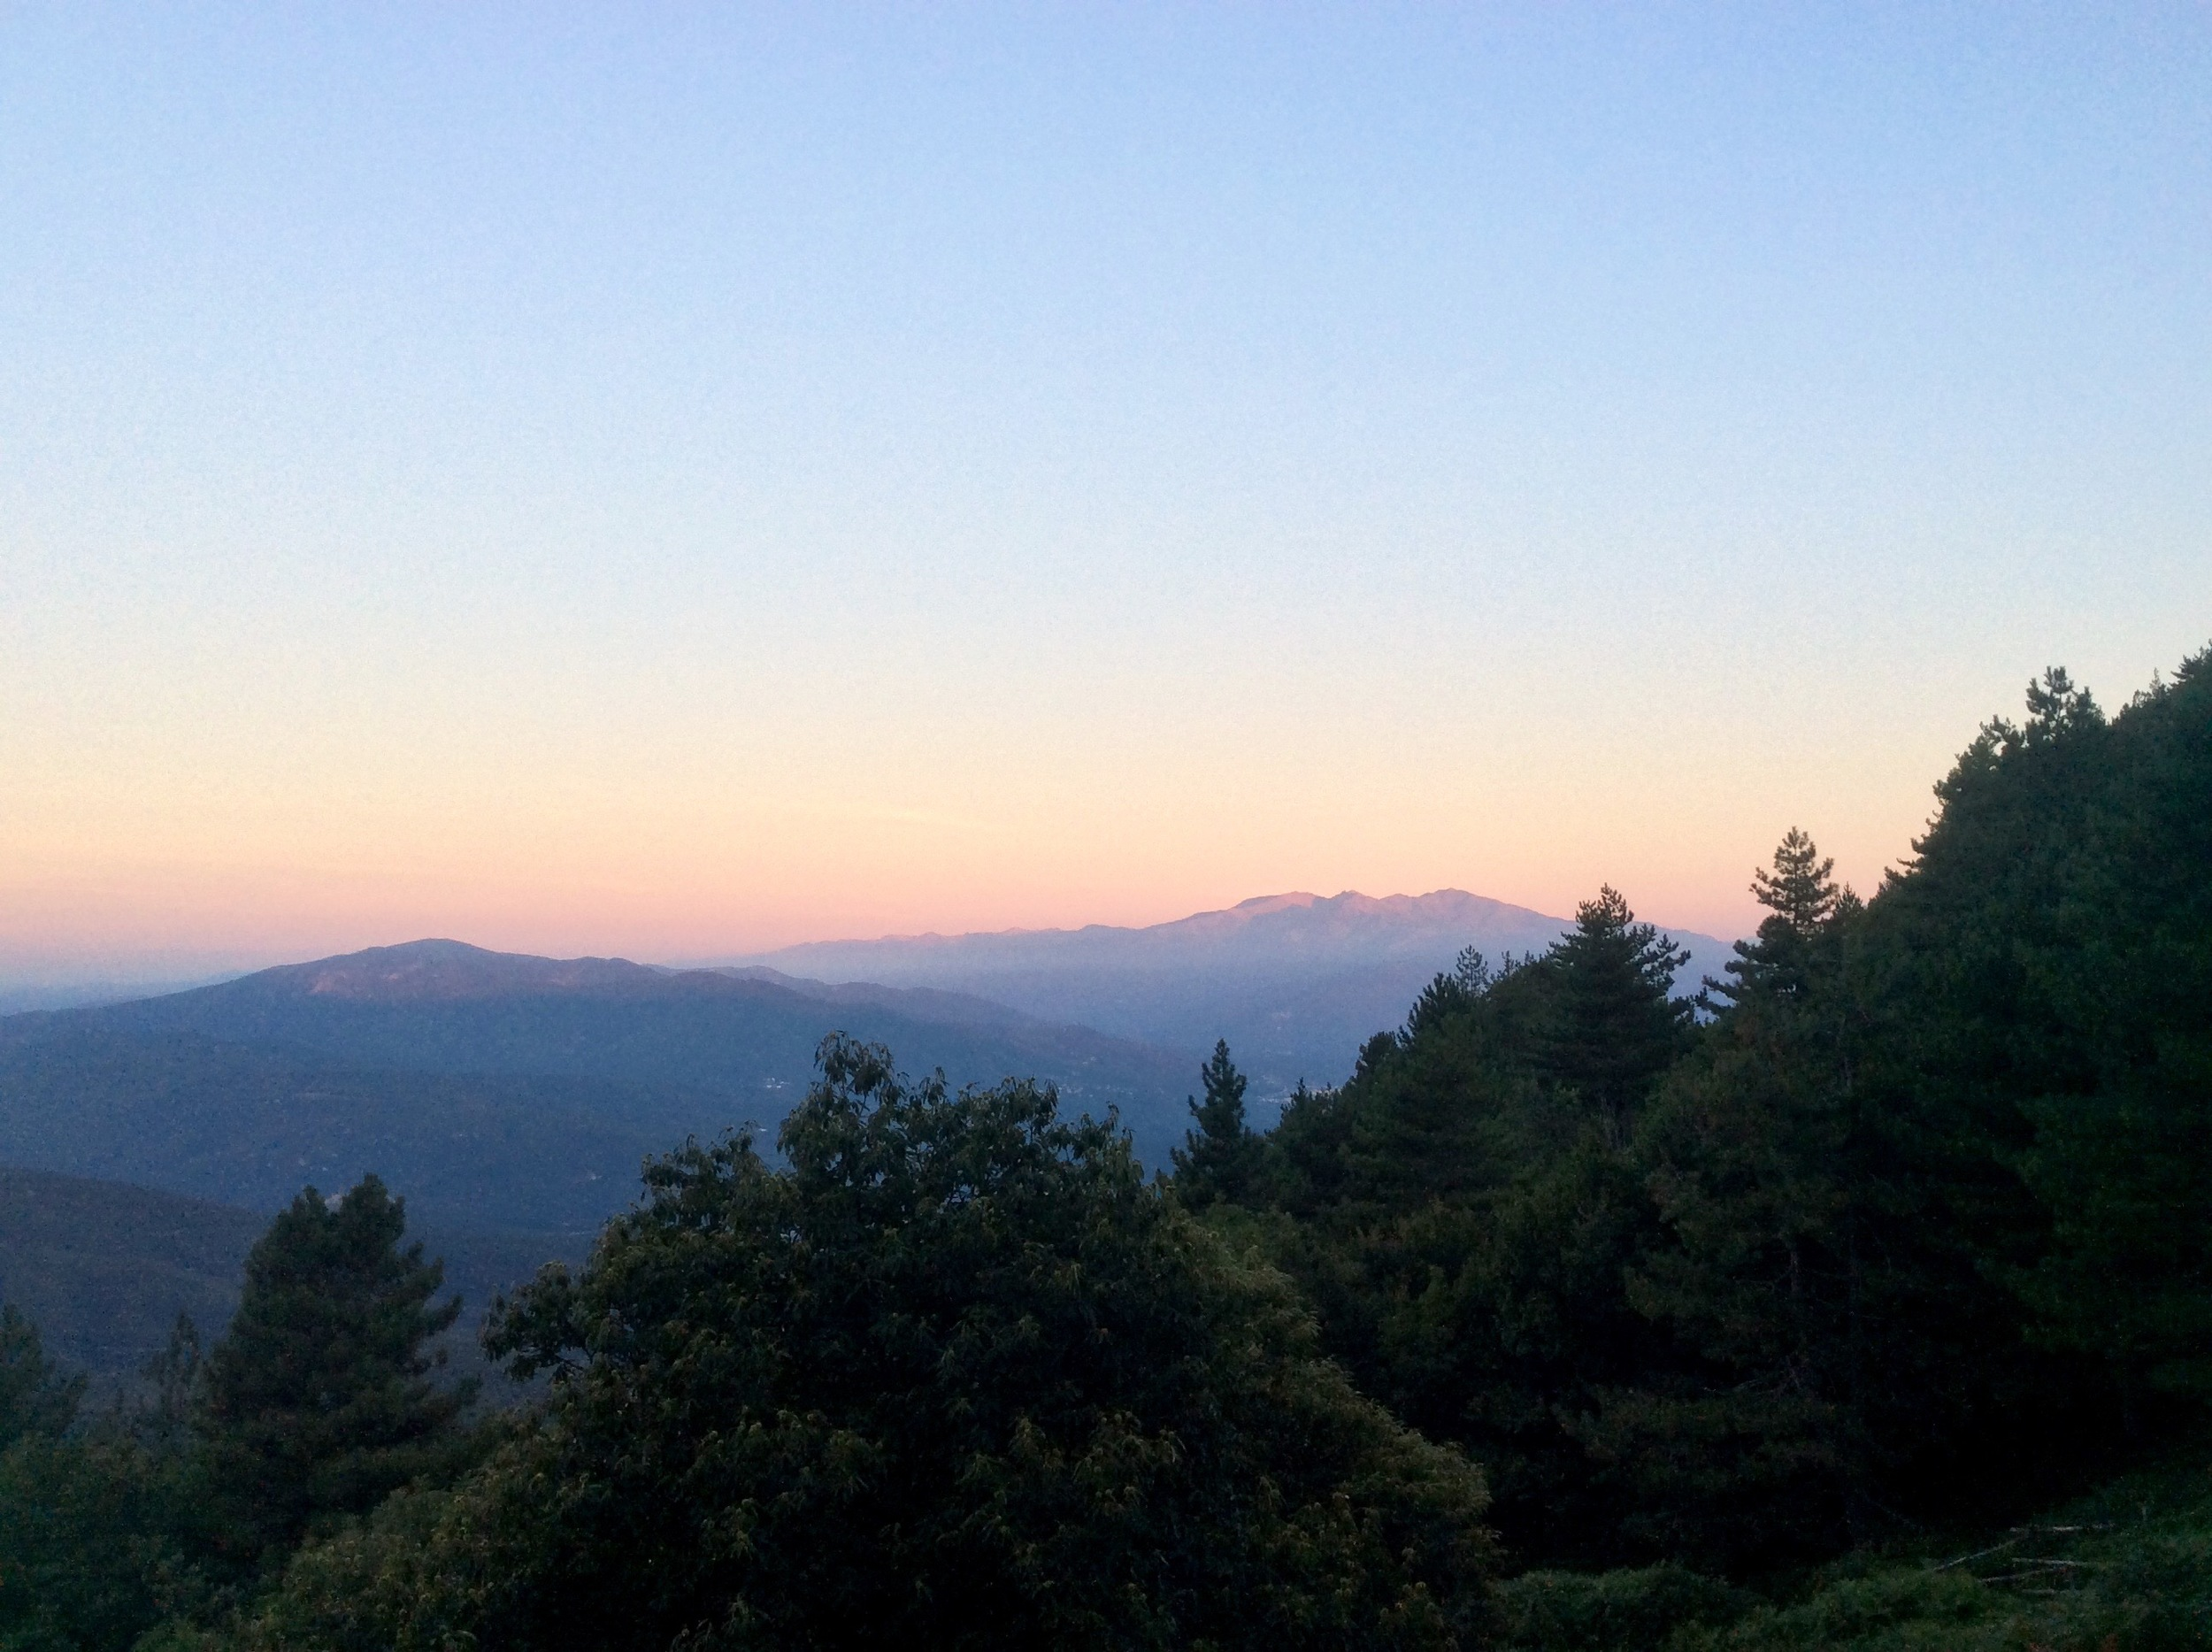 Canigou from the east